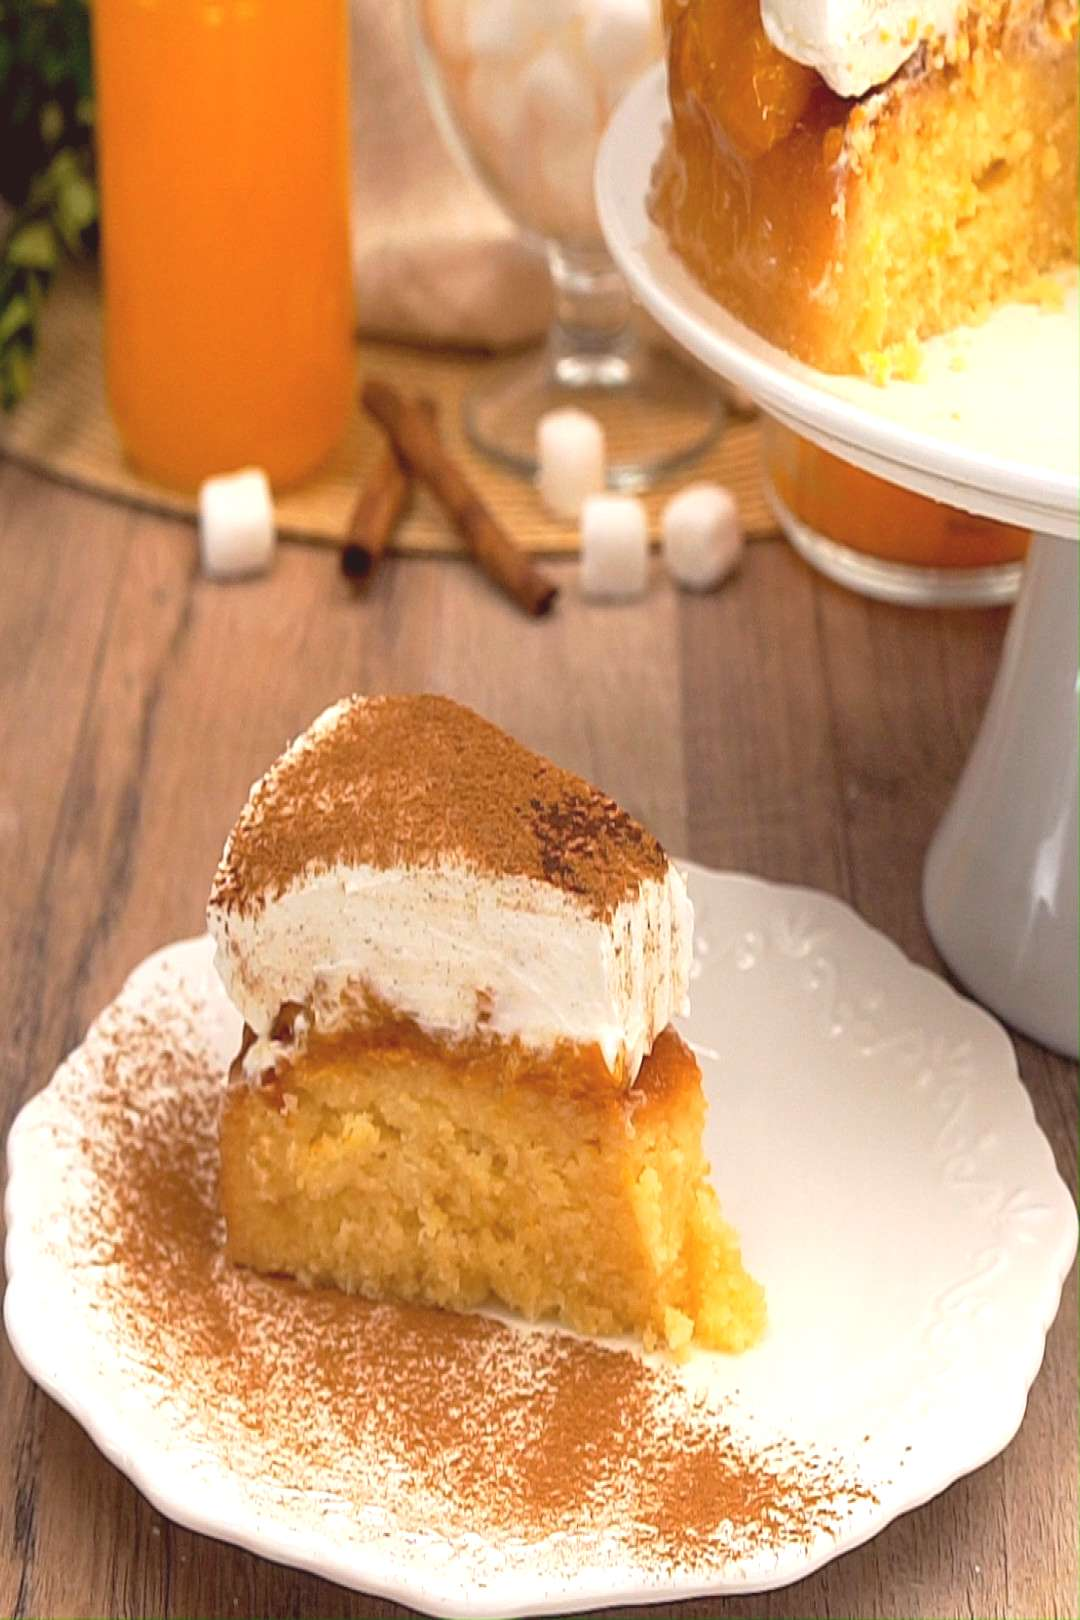 Fanta cake the classic from childhood - Fanta cake is THE childhood classic par excellence. We ha